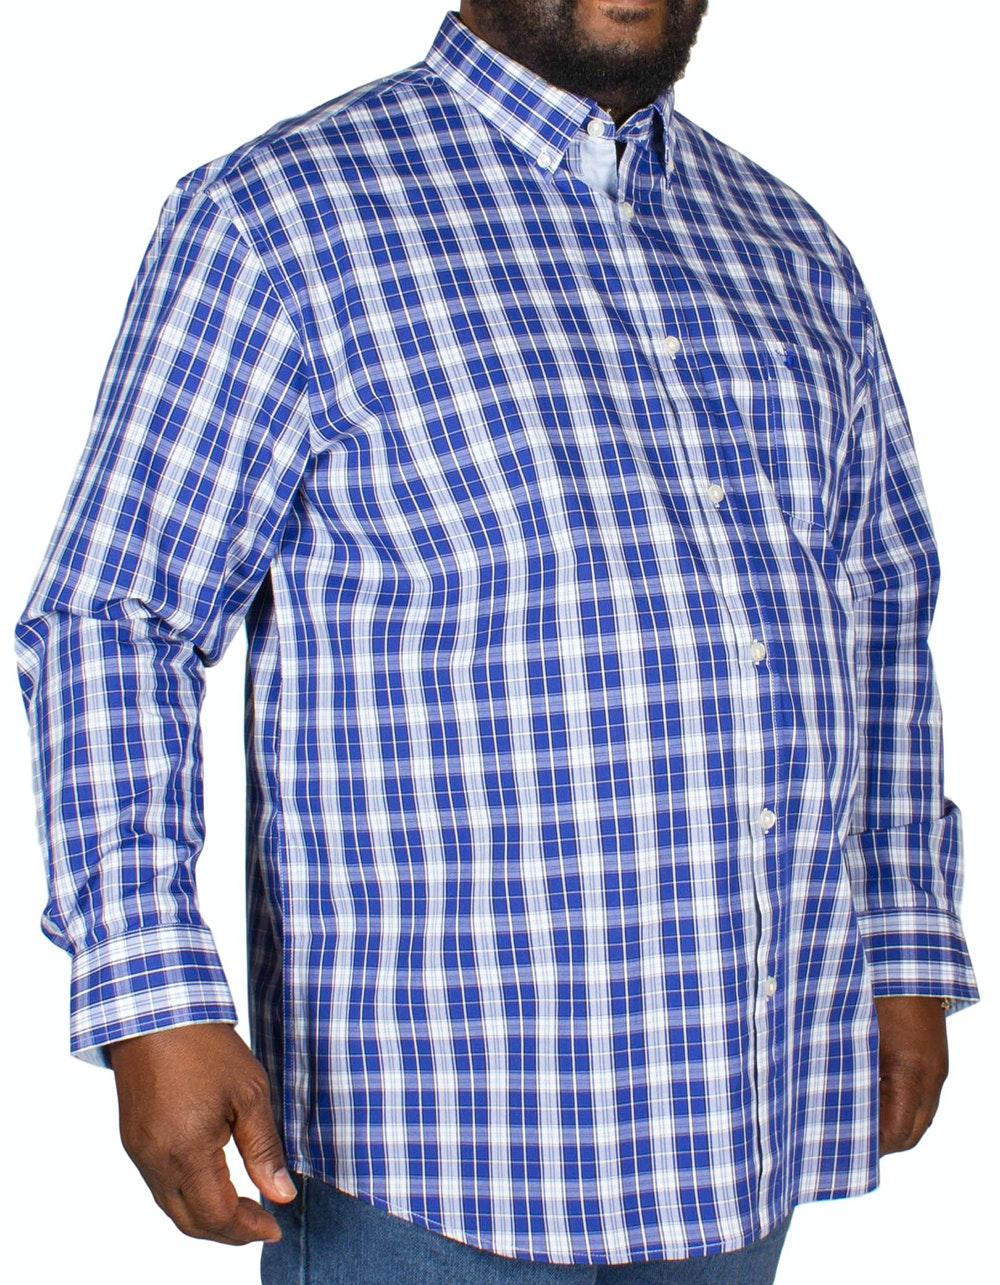 KAM Long Sleeve Casual Check Shirt Blue